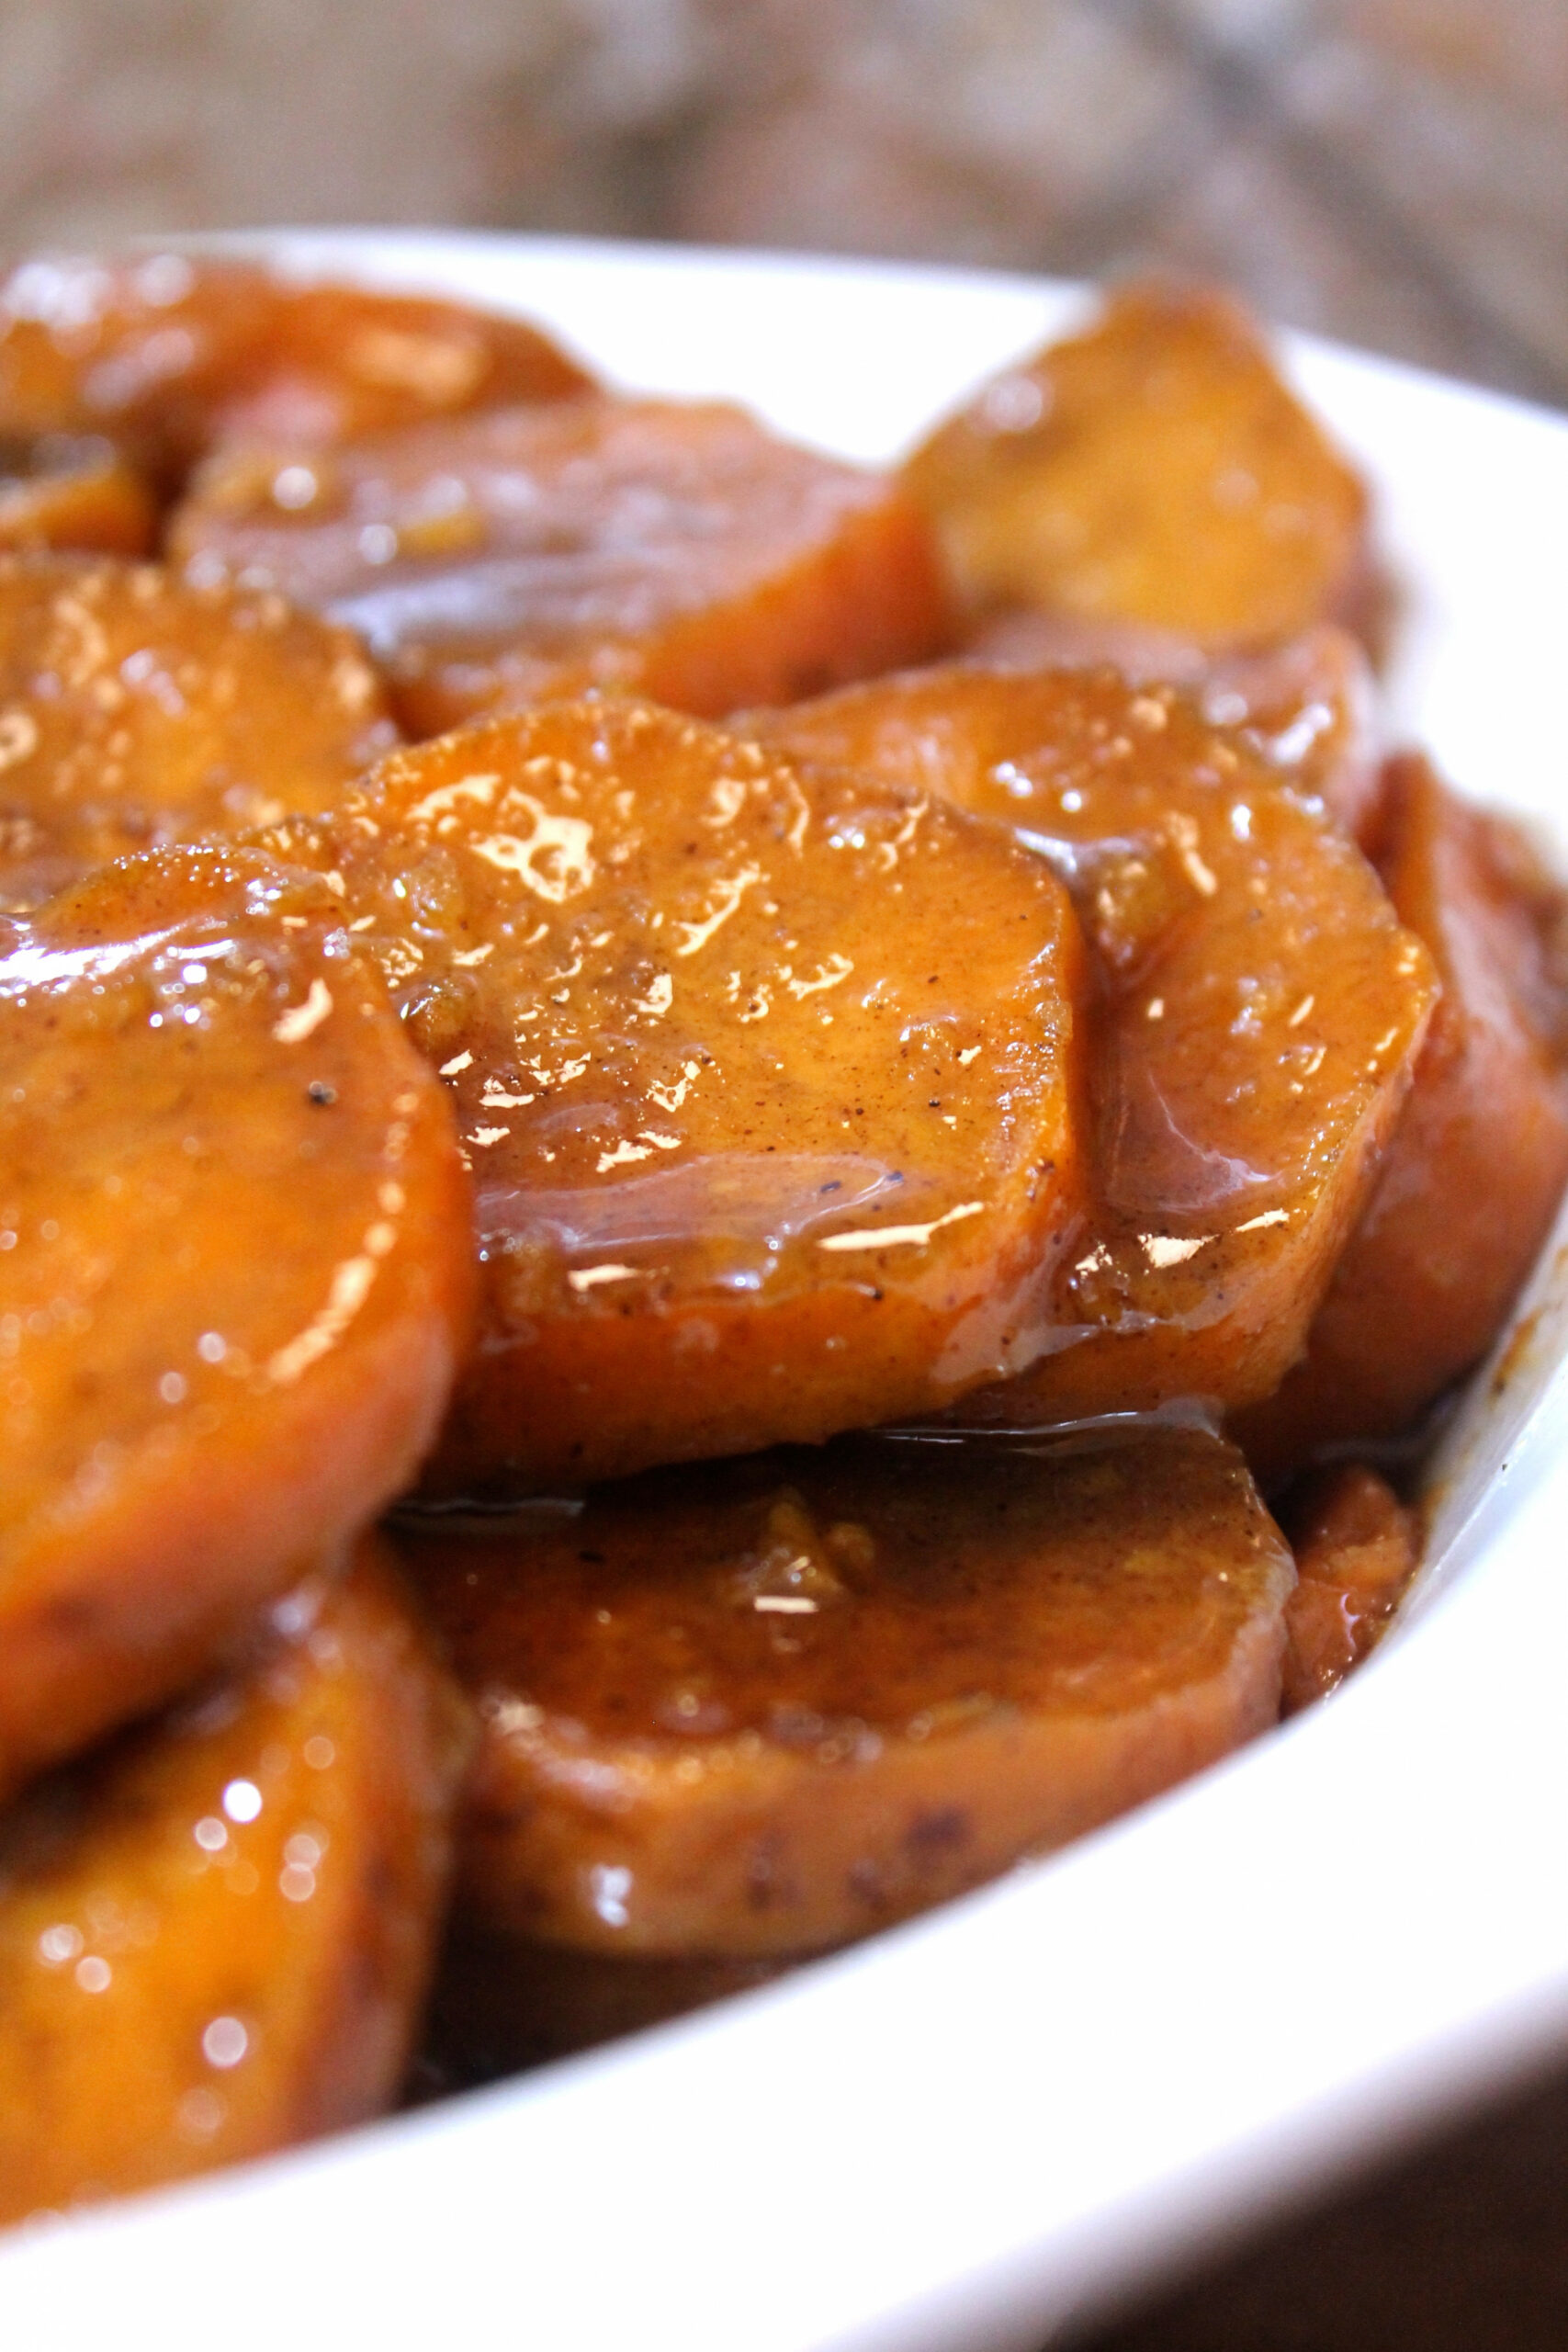 Baked Candied Yams Soul Food Style | I Heart Recipes - soul food recipes